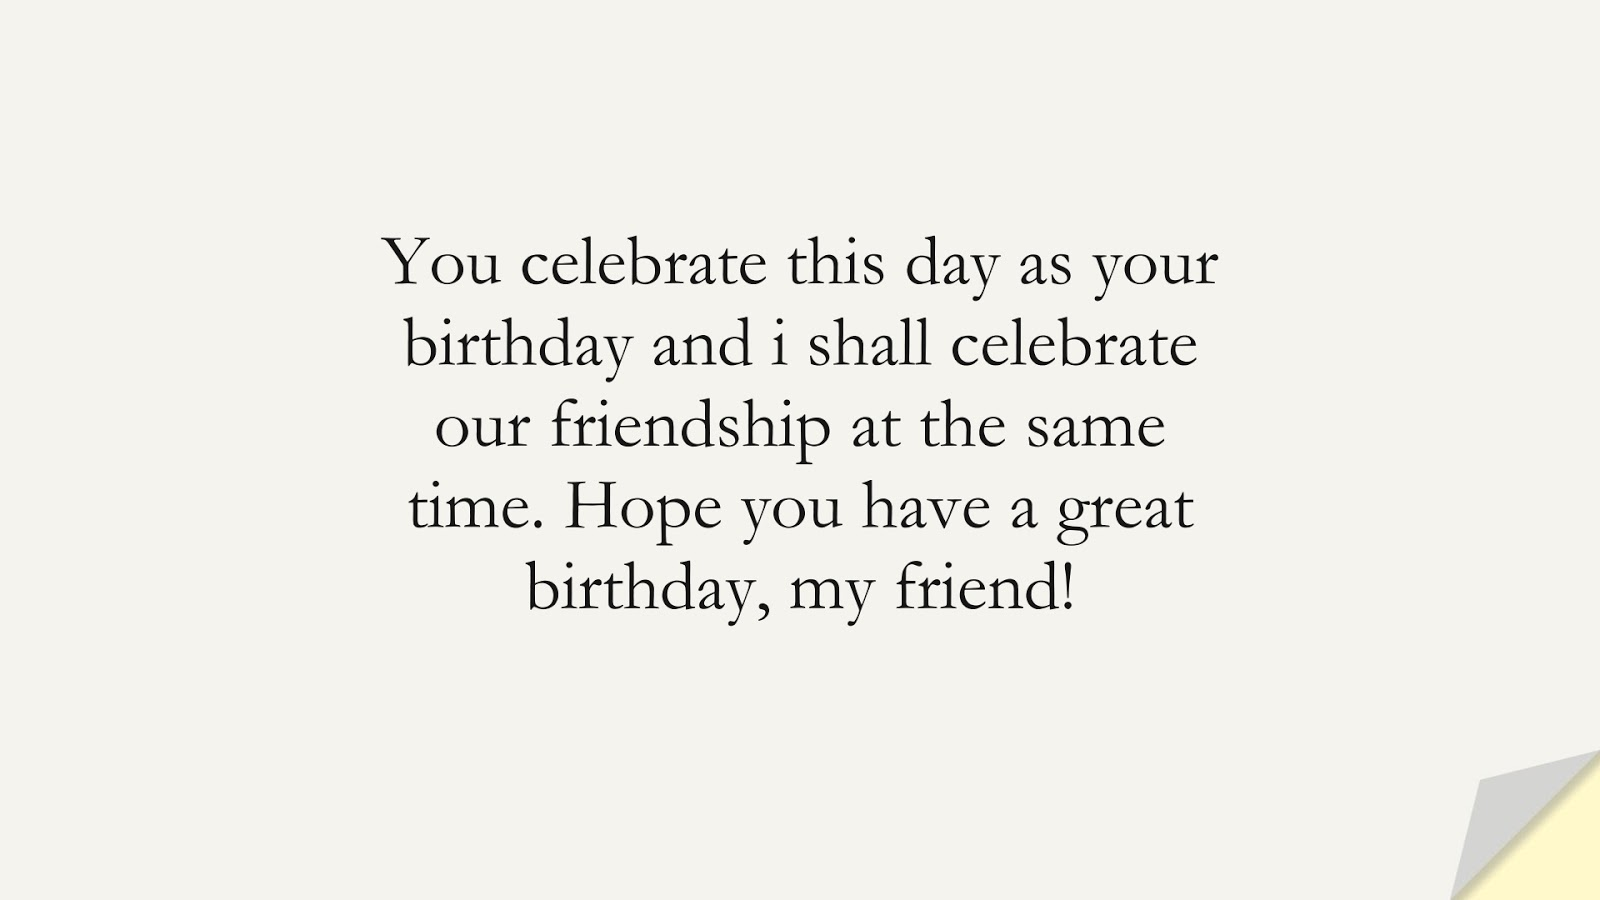 You celebrate this day as your birthday and i shall celebrate our friendship at the same time. Hope you have a great birthday, my friend!FALSE